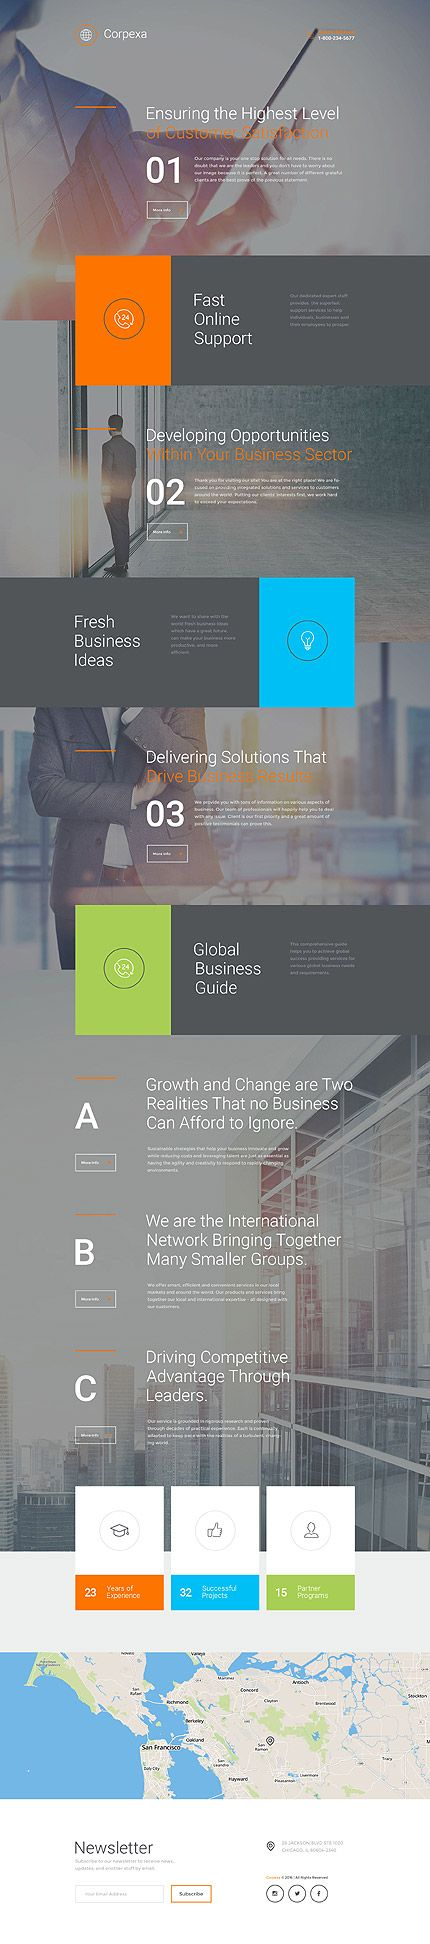 Template 58222 - Corpexa Business Responsive Landing Page Template ...